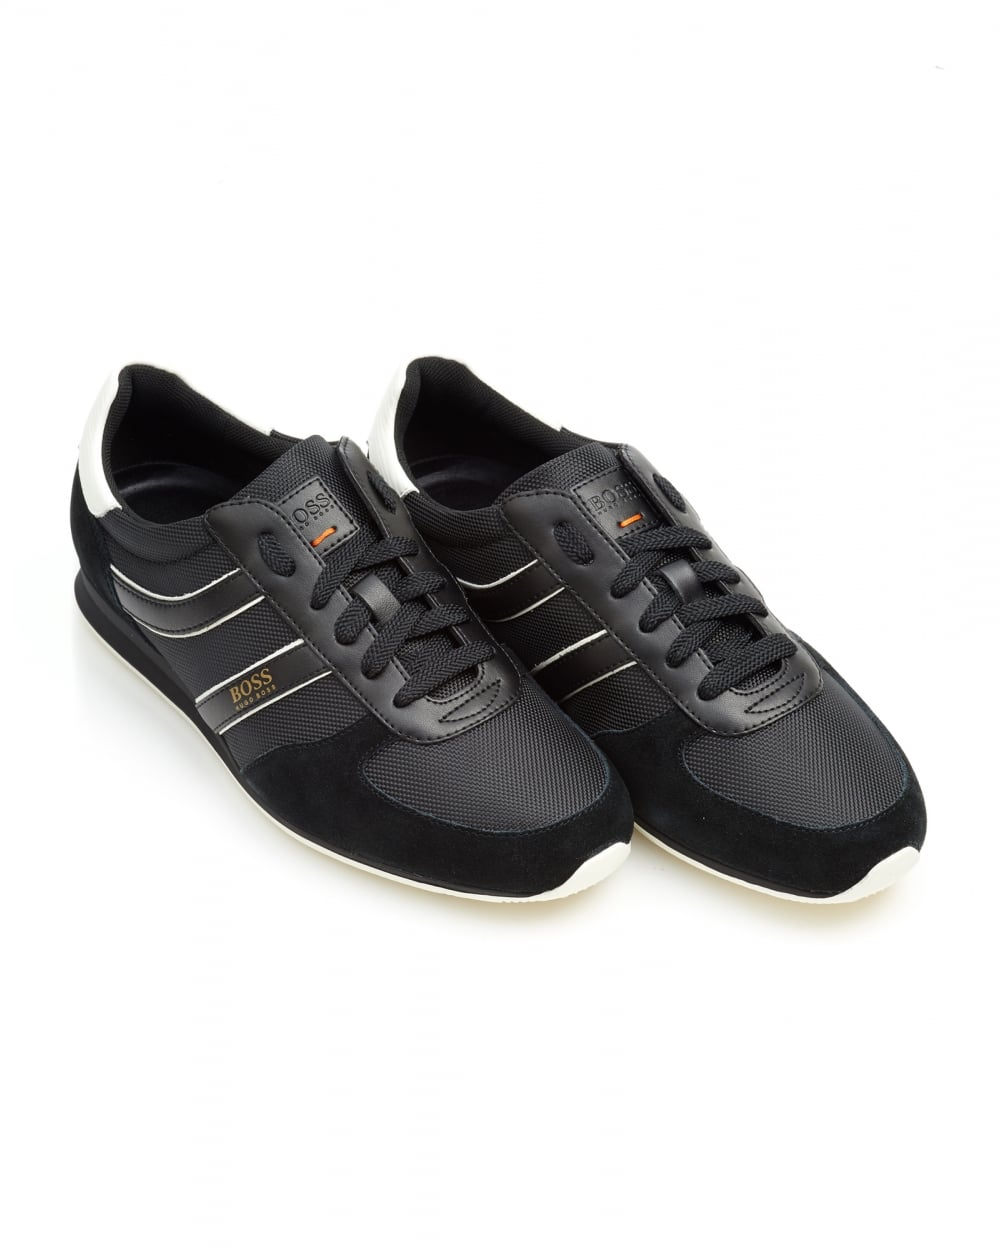 save up to 60% save up to 60% fashionable and attractive package Mens Orland_Runn_ny Trainers, Side Stripe Black Sneakers